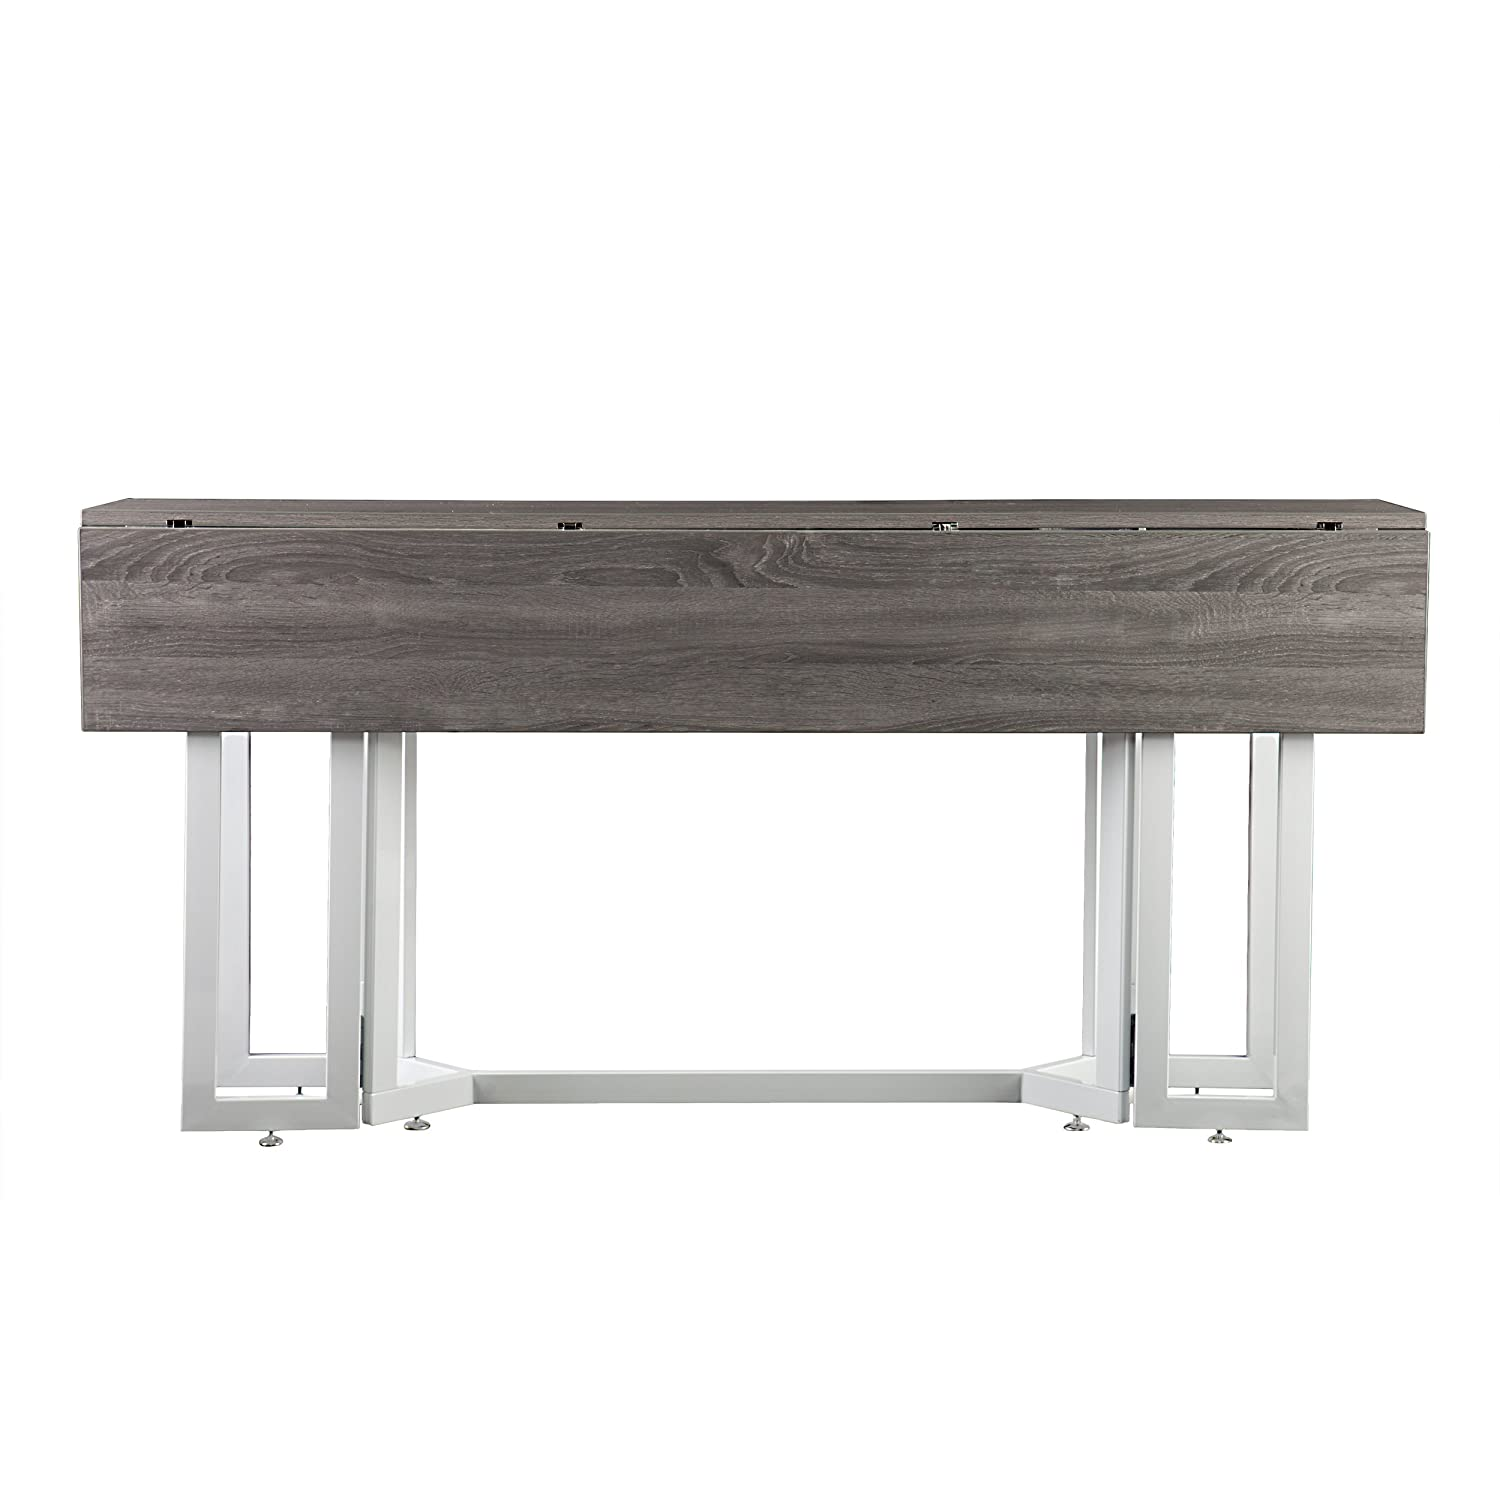 Amazon holly martin driness drop leaf console dining table amazon holly martin driness drop leaf console dining table weathered gray finish with white metal base tables geotapseo Images